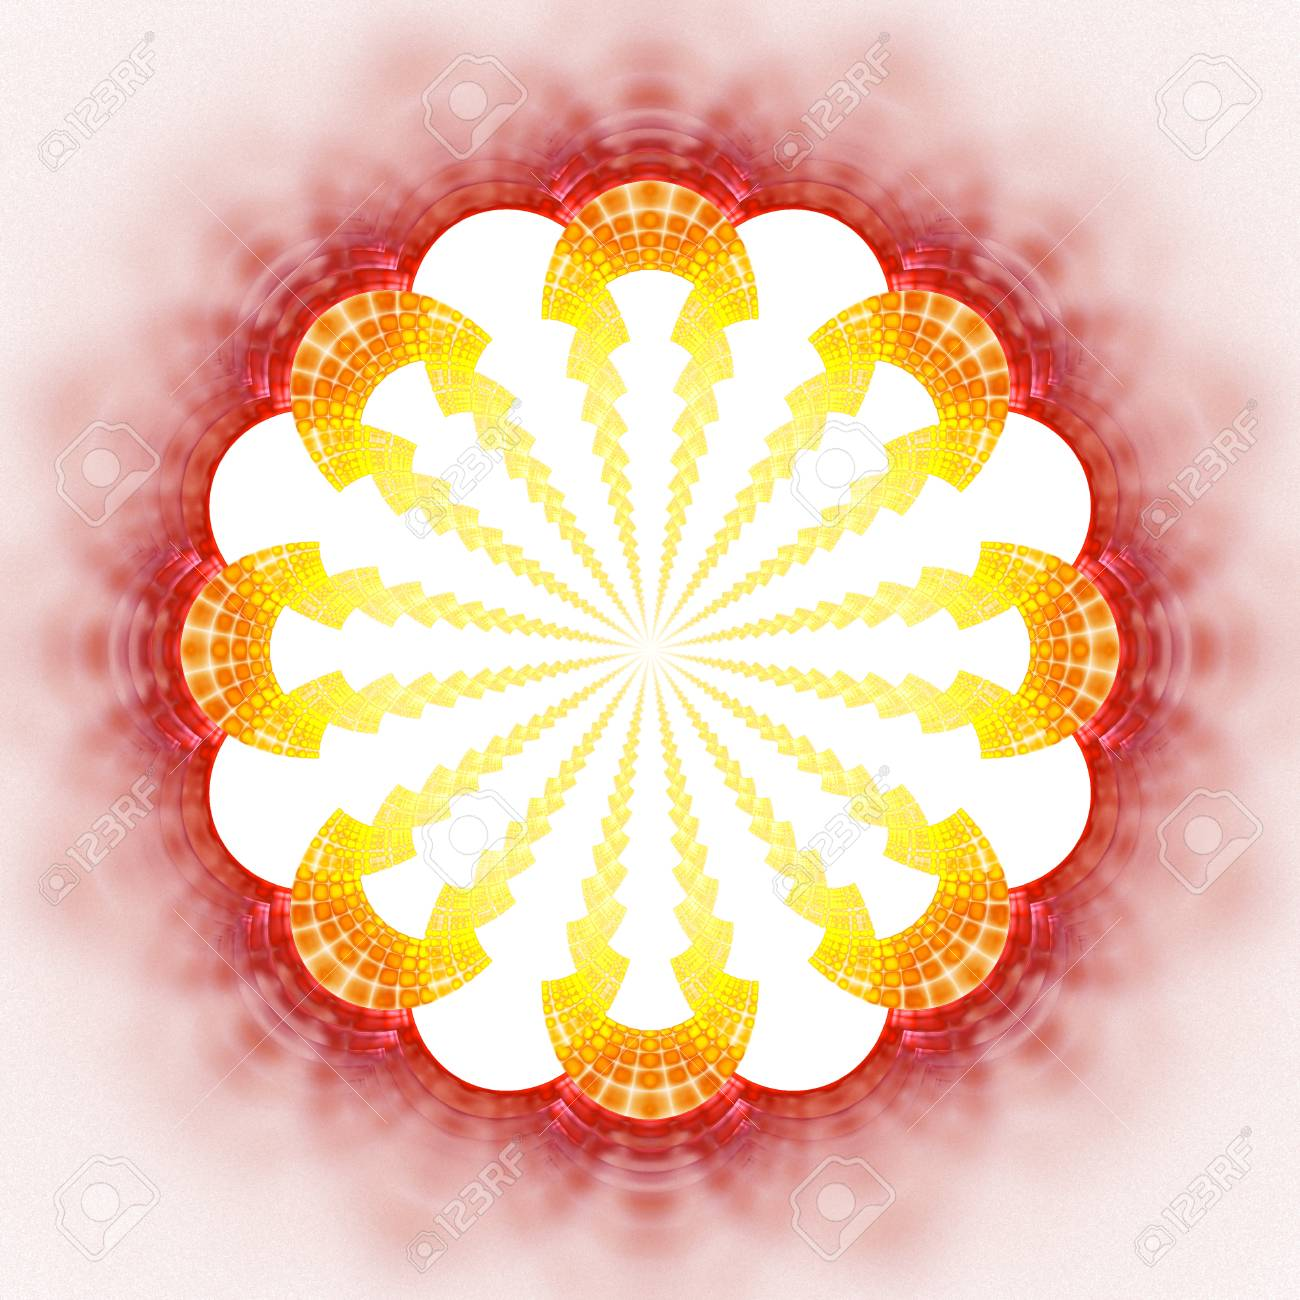 71c331bee Abstract flower mandala on white background. Symmetrical pattern in red,  orange and yellow colors